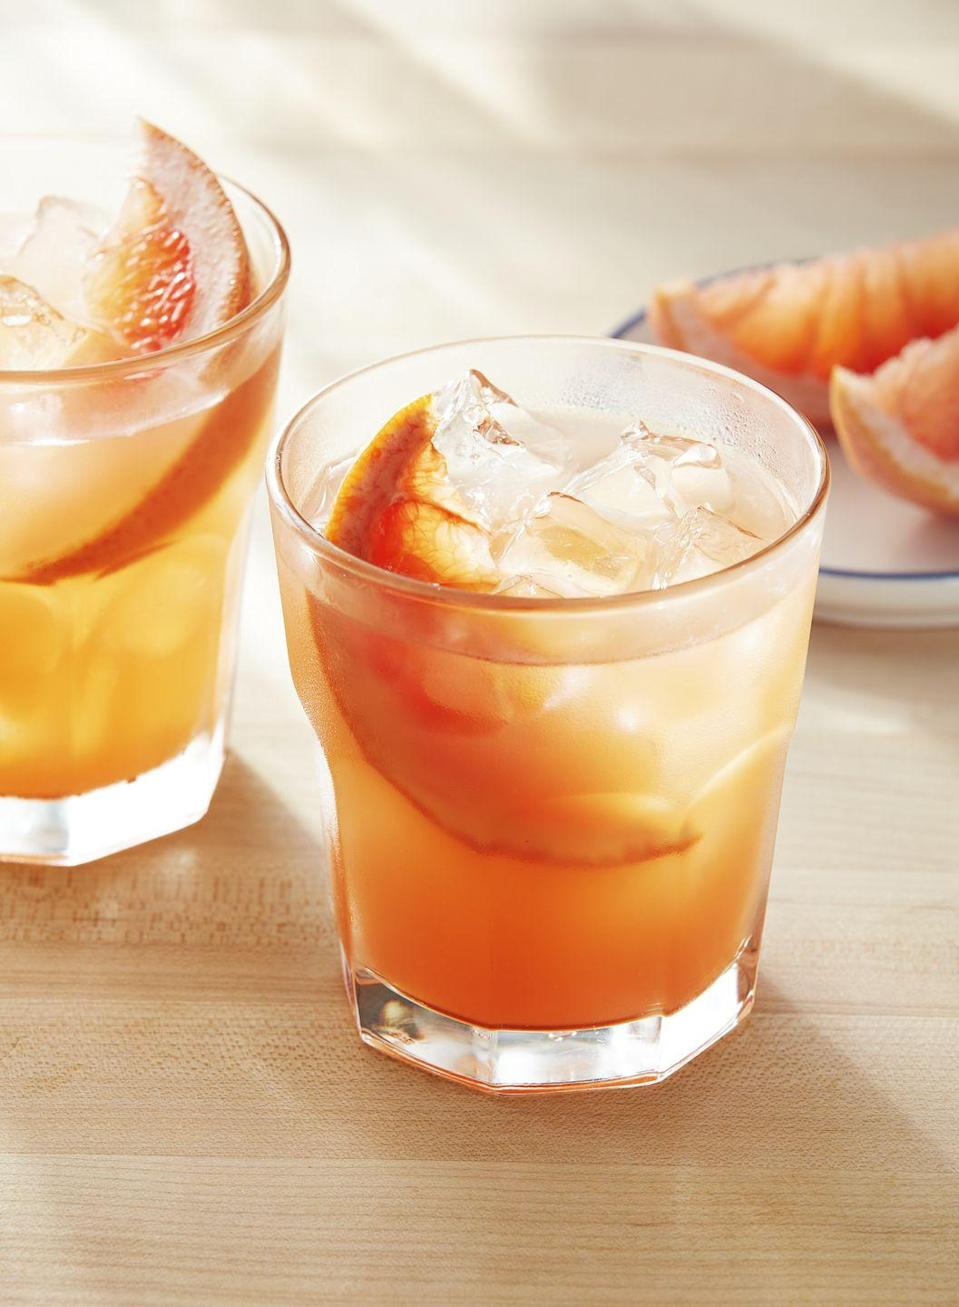 """<p>Give yourself a treat with this bright, citrusy cocktail. </p><p><strong><a href=""""https://www.countryliving.com/food-drinks/a34276057/grapefruit-honey-rosemary-smash/"""" rel=""""nofollow noopener"""" target=""""_blank"""" data-ylk=""""slk:Get the recipe"""" class=""""link rapid-noclick-resp"""">Get the recipe</a>.</strong></p><p><strong><a class=""""link rapid-noclick-resp"""" href=""""https://go.redirectingat.com?id=74968X1596630&url=https%3A%2F%2Fwww.williams-sonoma.com%2Fproducts%2Ftall-glass-pitcher%2F&sref=https%3A%2F%2Fwww.countryliving.com%2Ffood-drinks%2Fg1642%2Feaster-brunch-ideas%2F"""" rel=""""nofollow noopener"""" target=""""_blank"""" data-ylk=""""slk:SHOP DRINK PITCHERS"""">SHOP DRINK PITCHERS</a><br></strong></p>"""